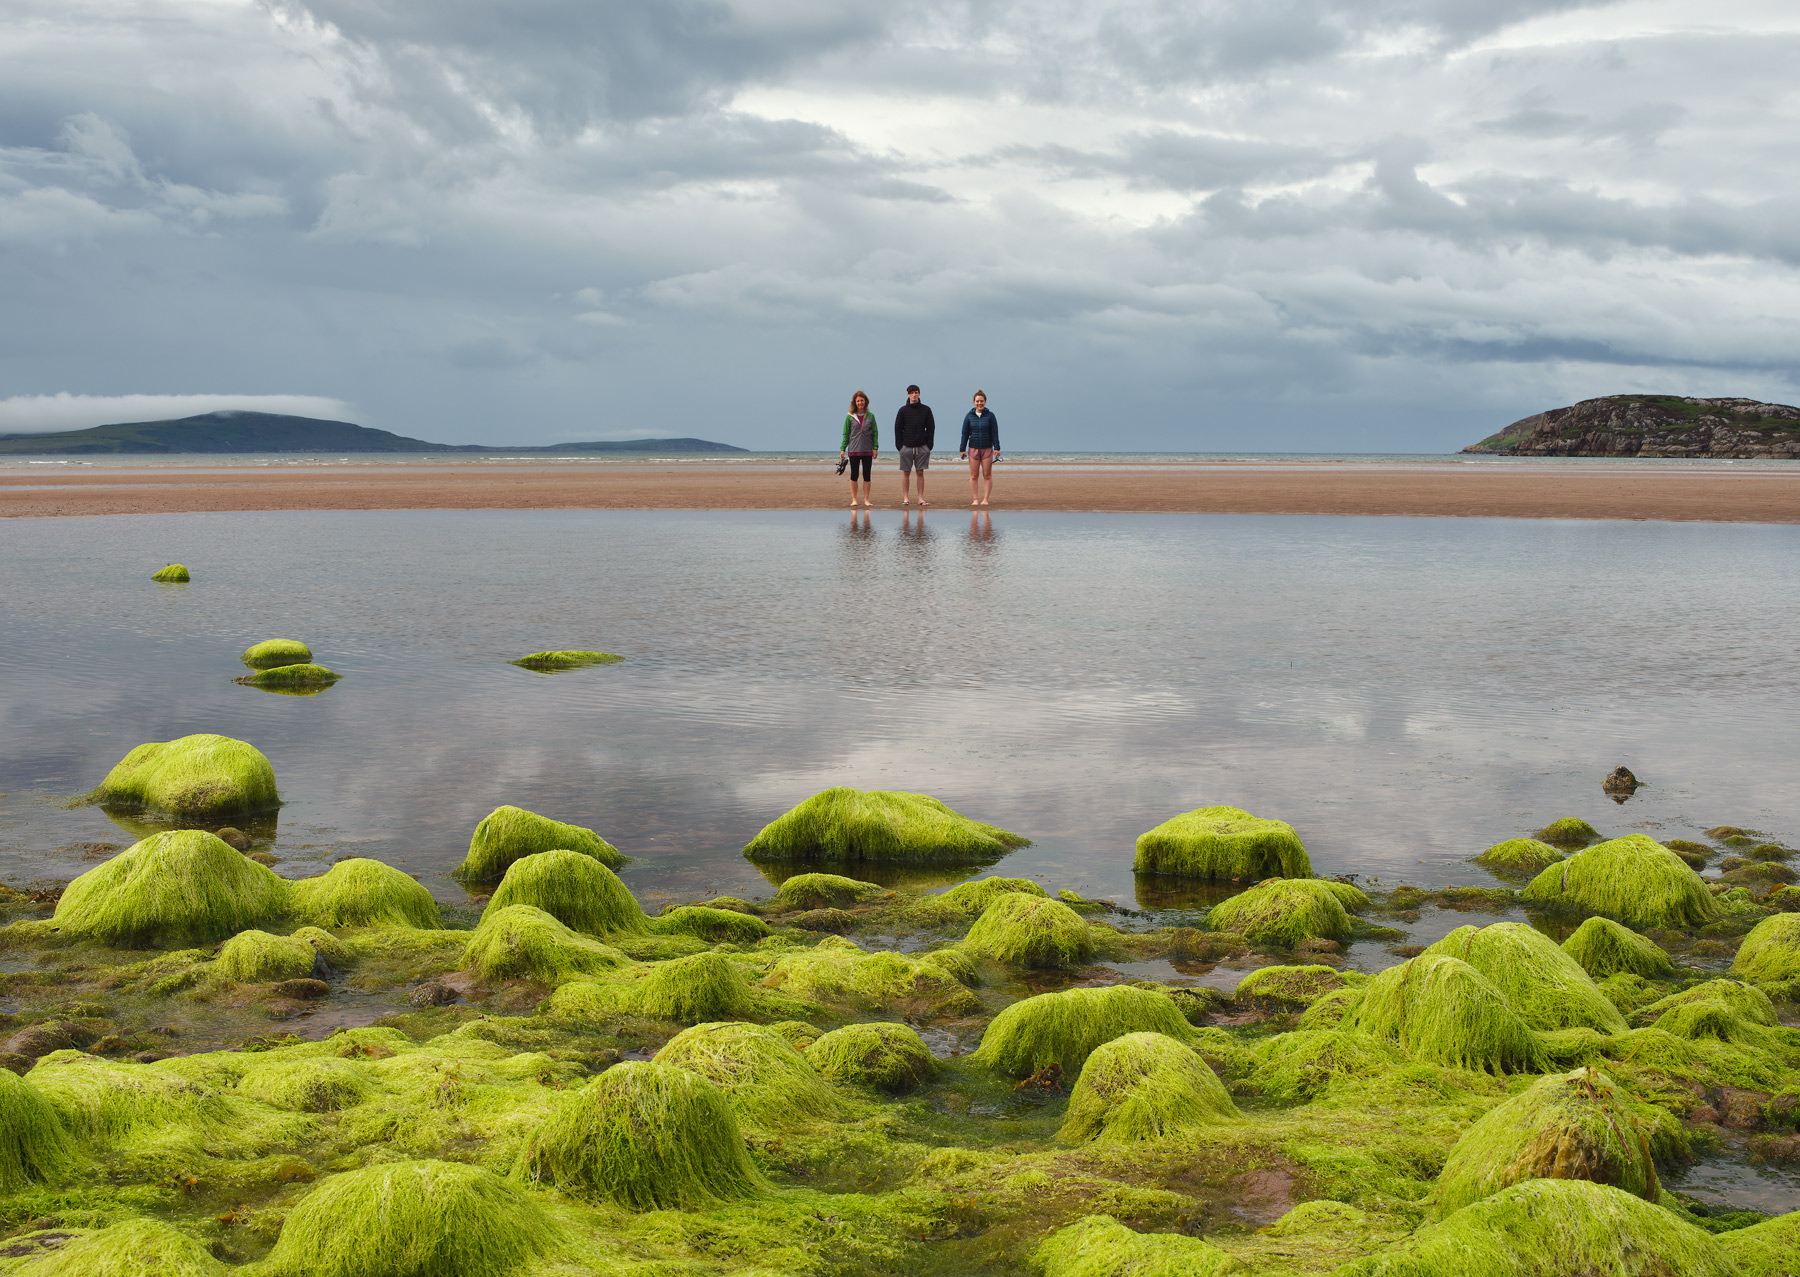 Fluorescent green sea weed drapes over rocks and pebbles bordering a tidal pool in Gruinard Bay at Wester Ross.